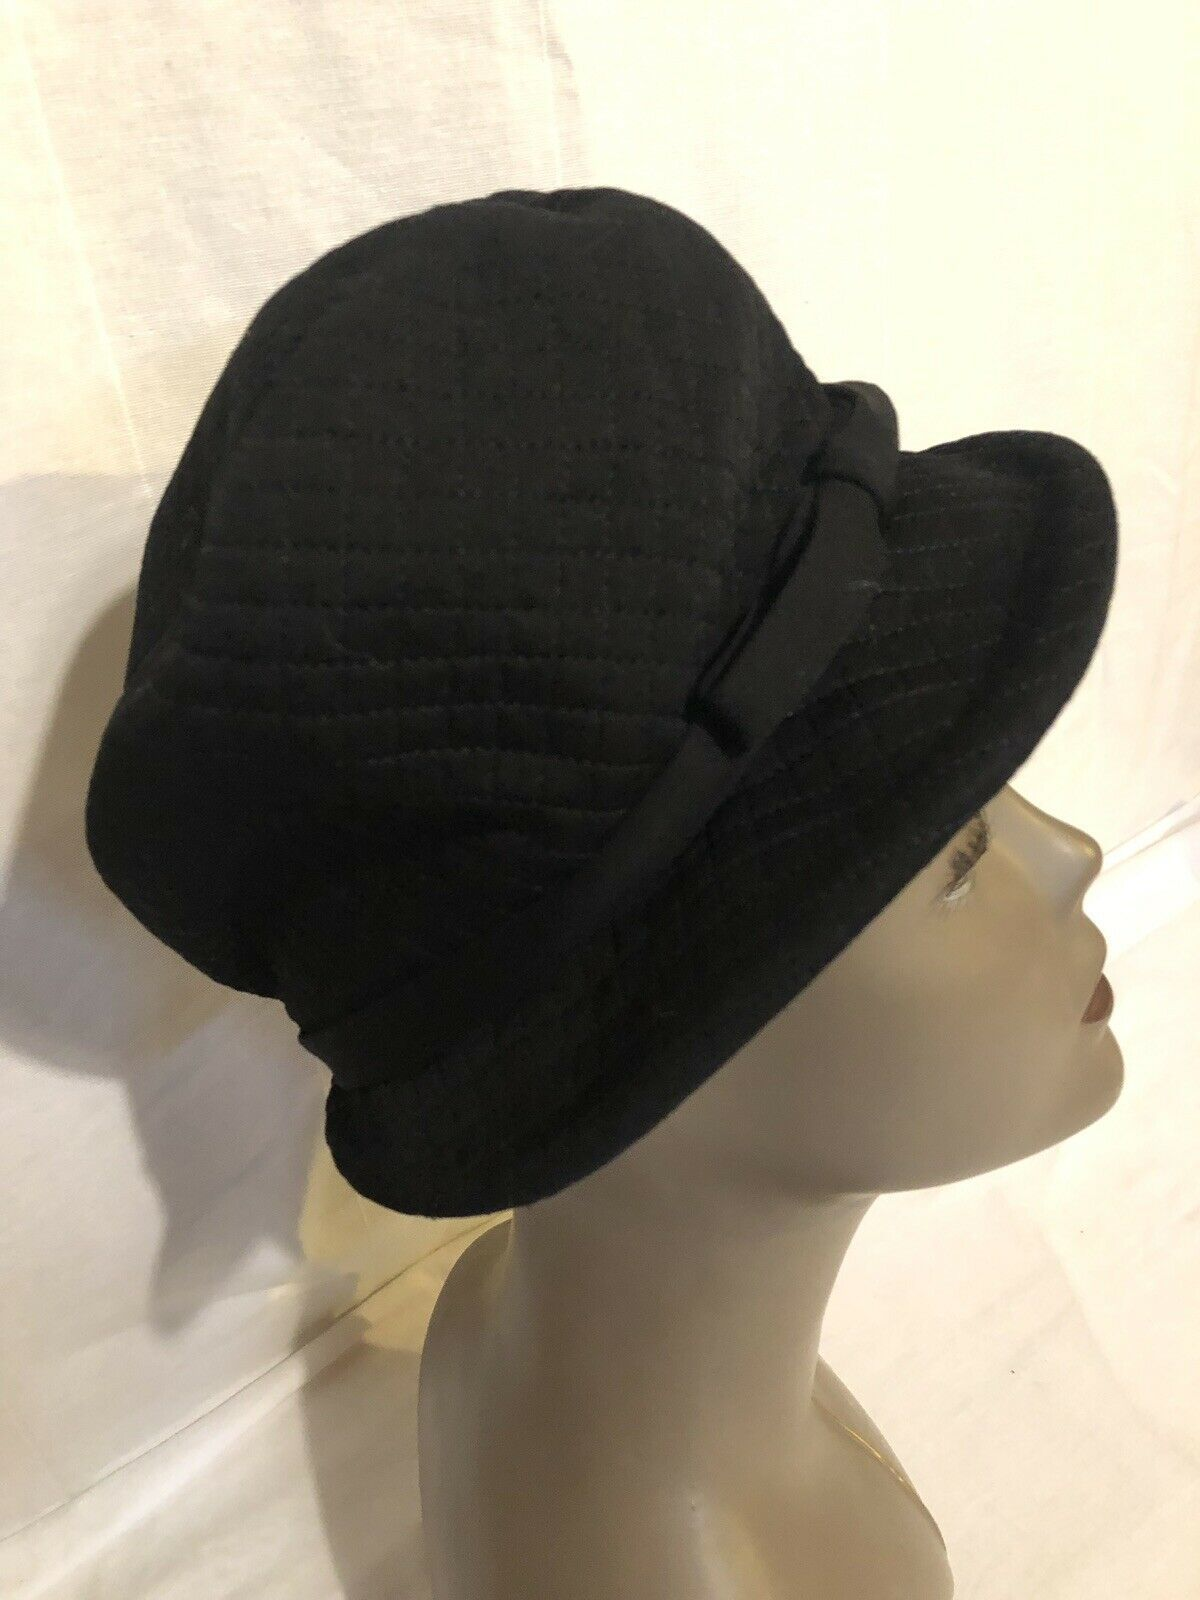 VINTAGE WOMEN'S BLACK QUILTED HAT-BETMAR for LORD & TAYLOR Size 6 1/2-7